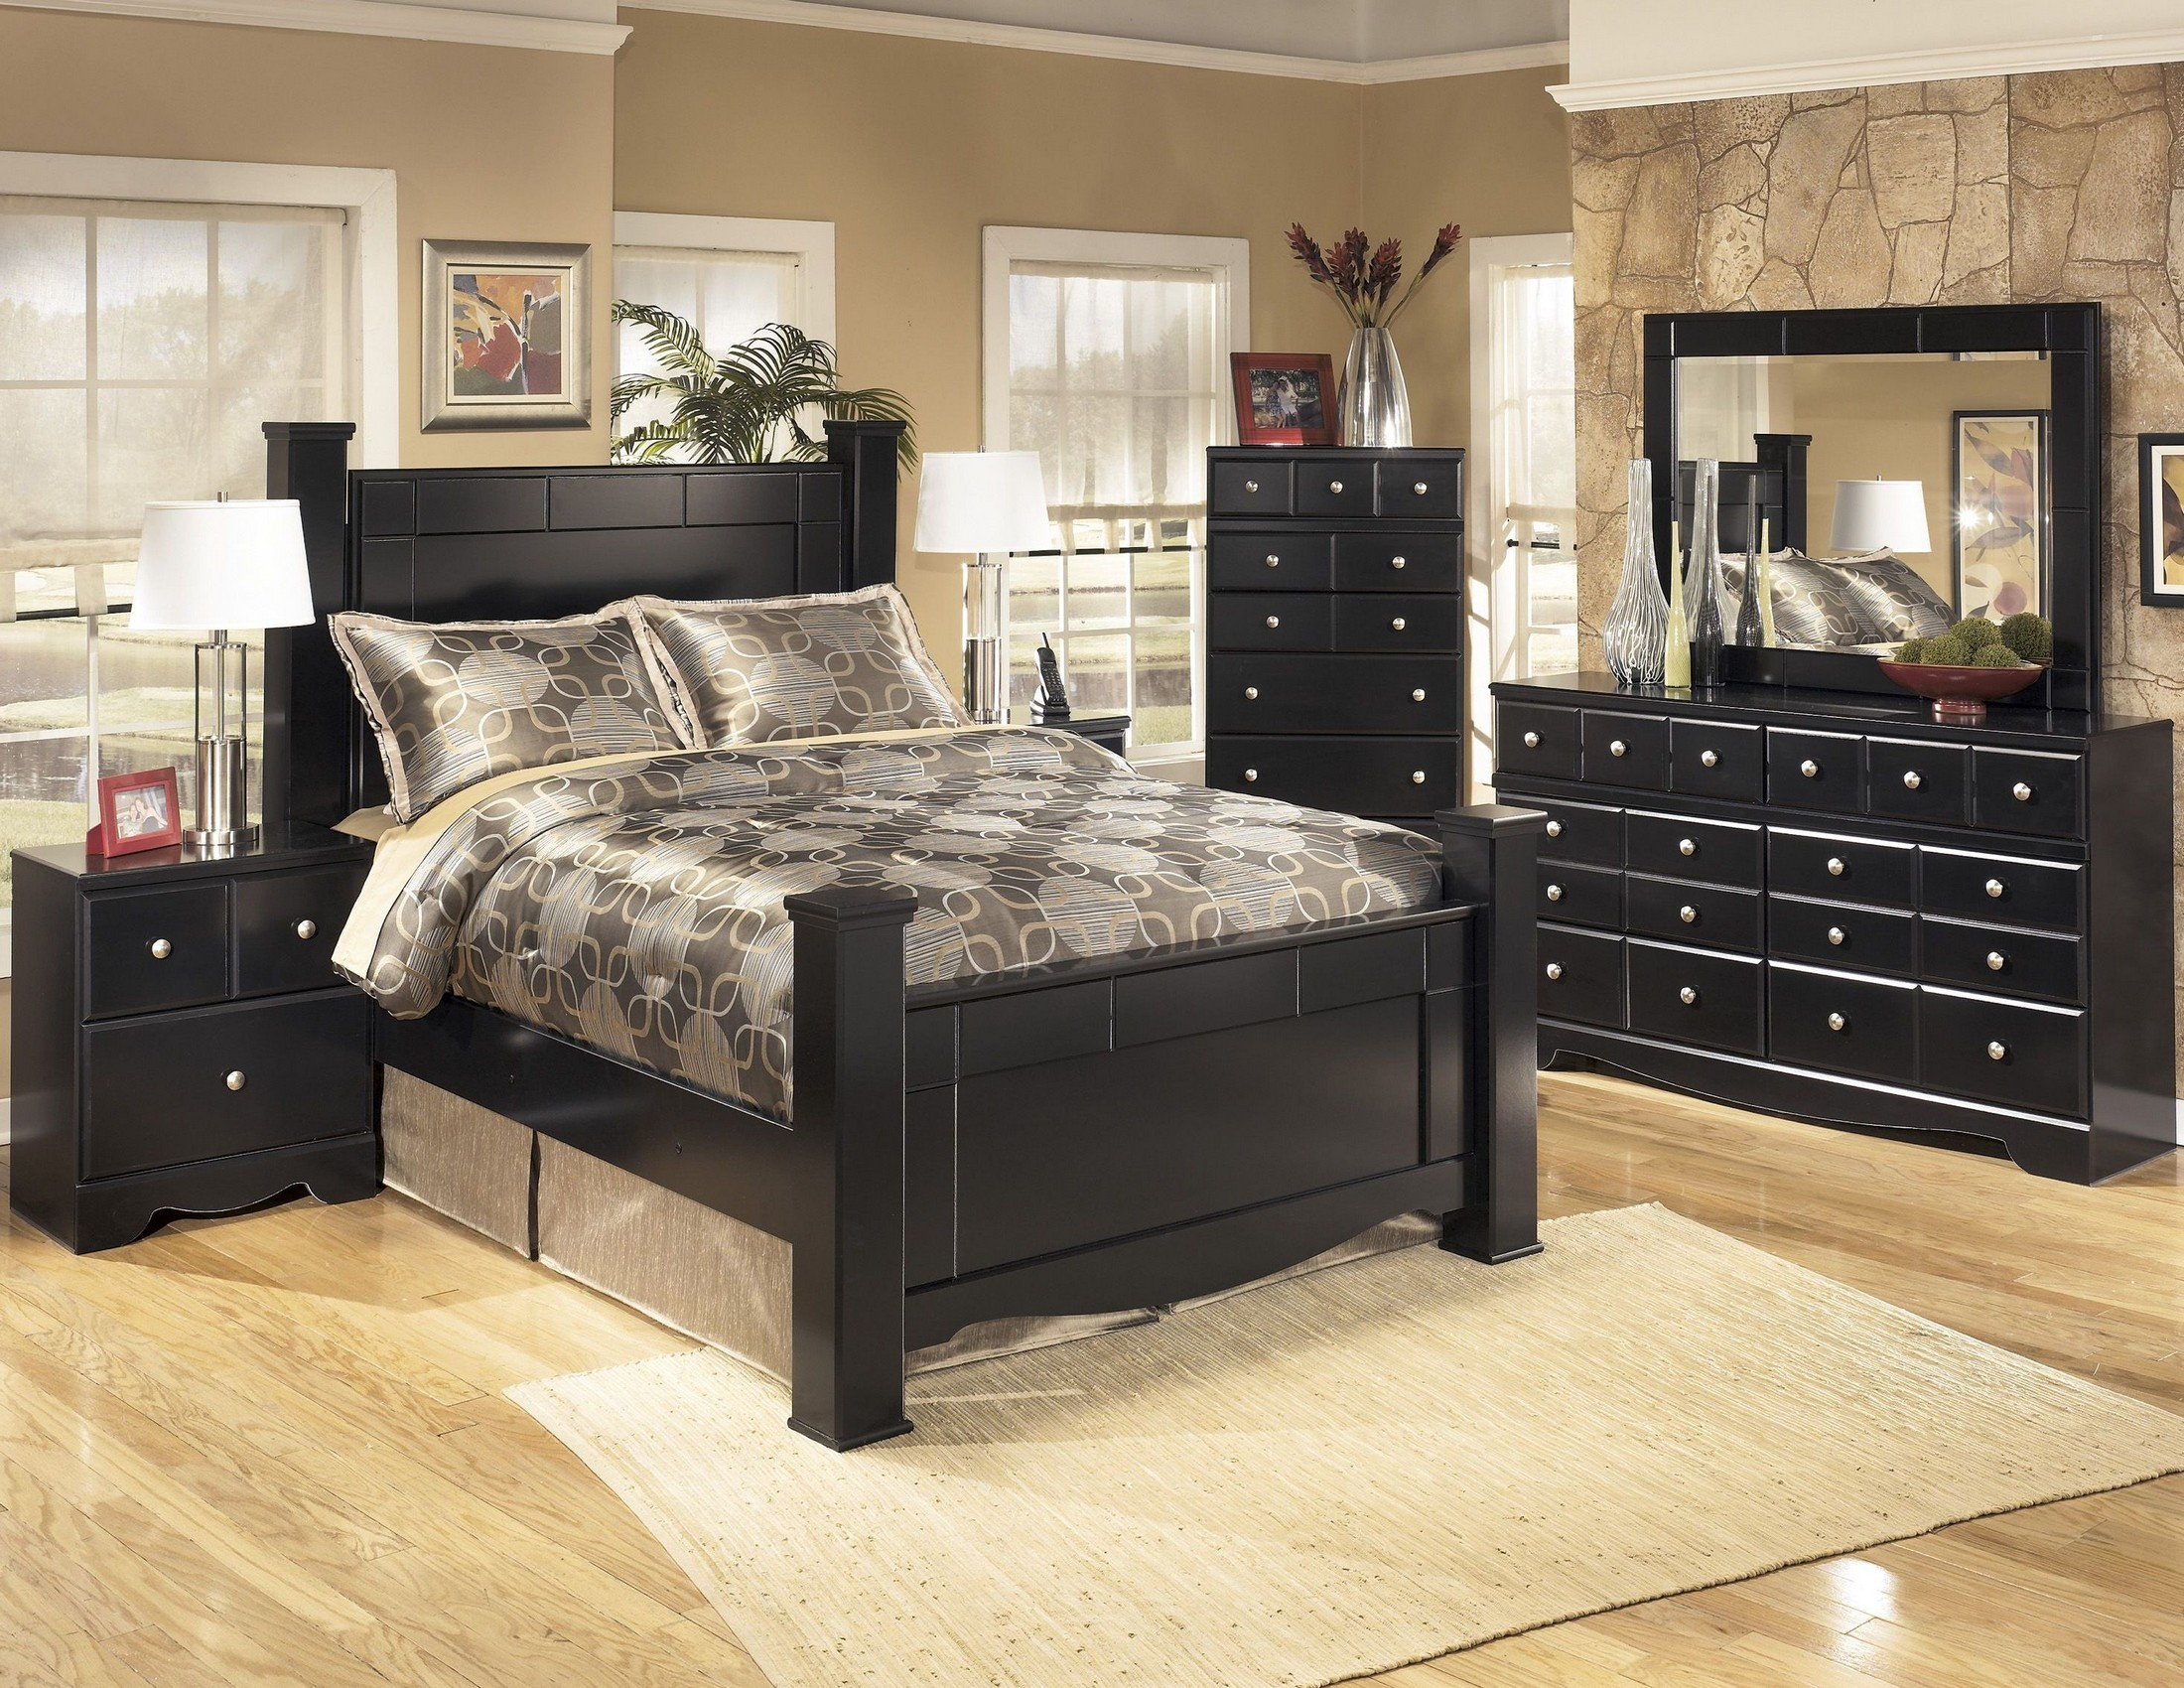 shay poster bedroom set from ashley b271 61 64 67 98 coleman furniture. Black Bedroom Furniture Sets. Home Design Ideas